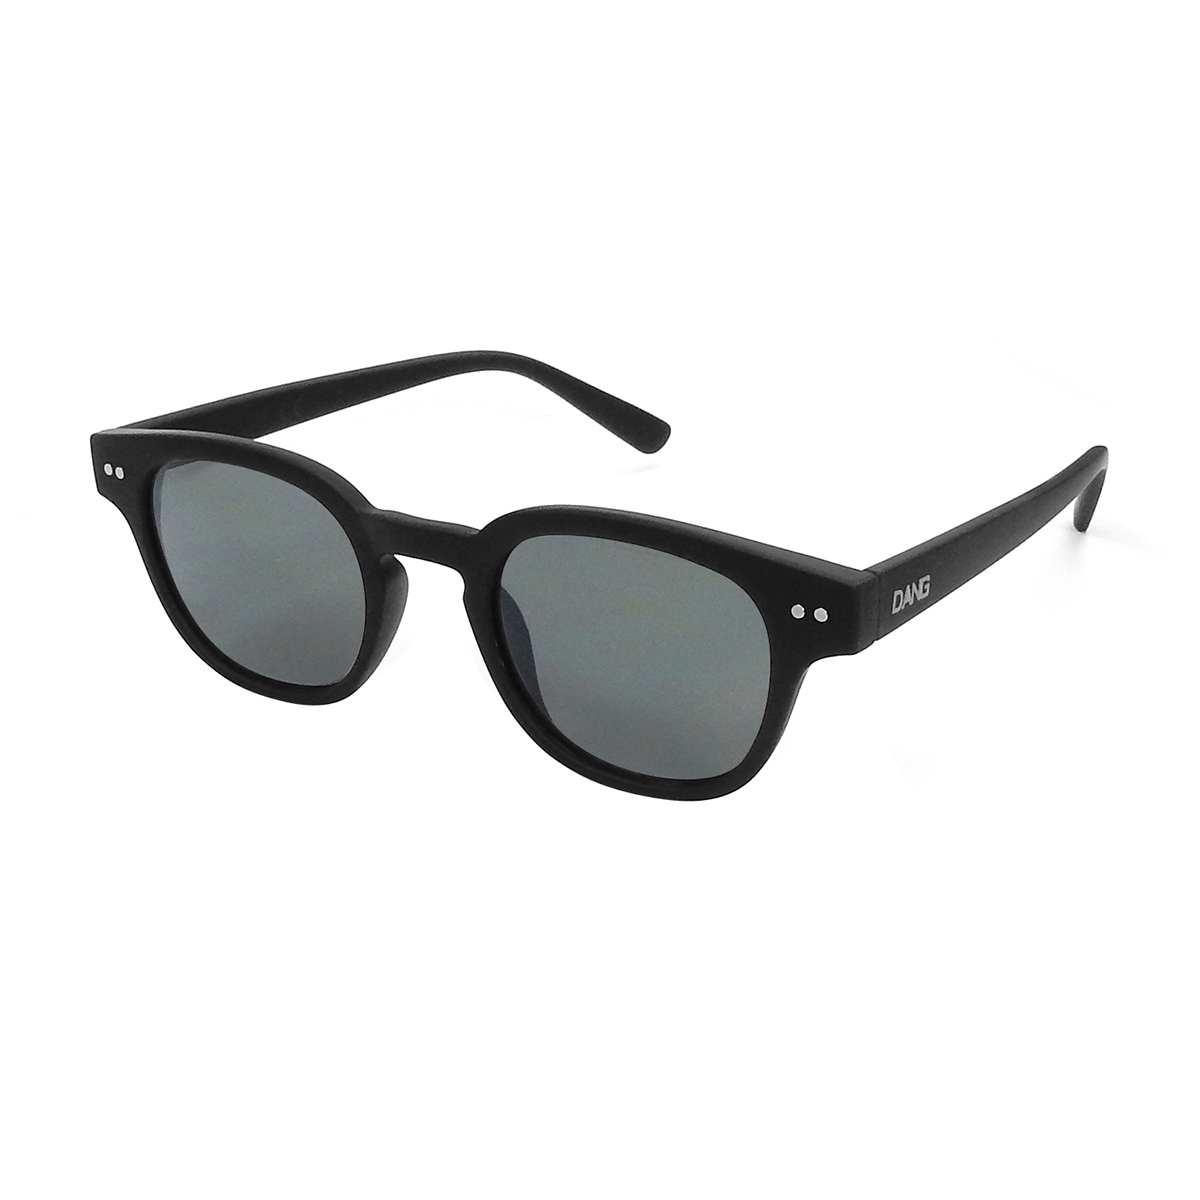 ZENITH Black Soft x Black Smoke Polarized・vidg00371(偏光レンズ)